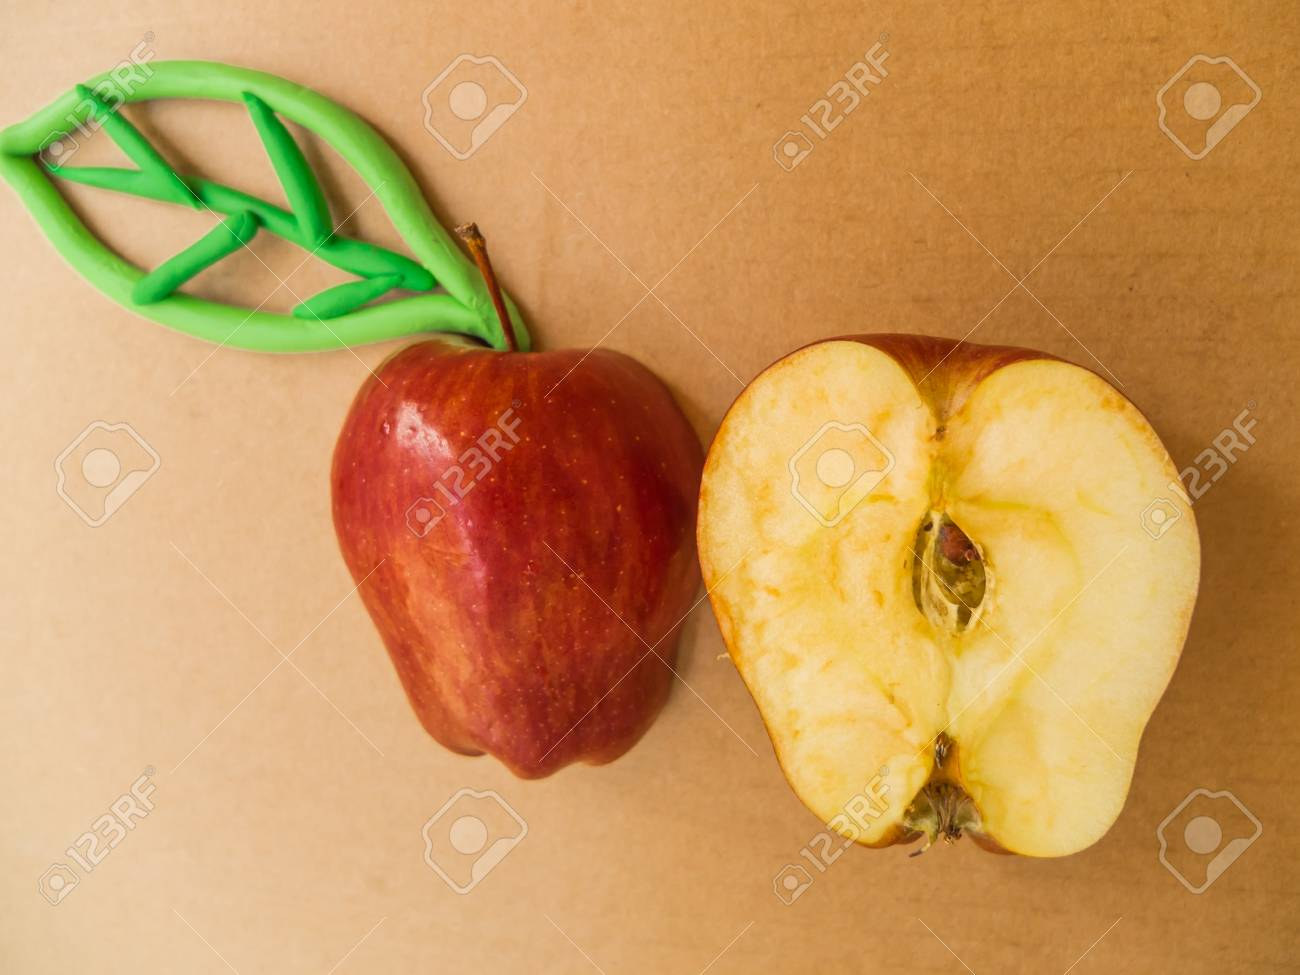 red apple haft with Plasticine green leaf  on isoled brown background Stock Photo - 20644390